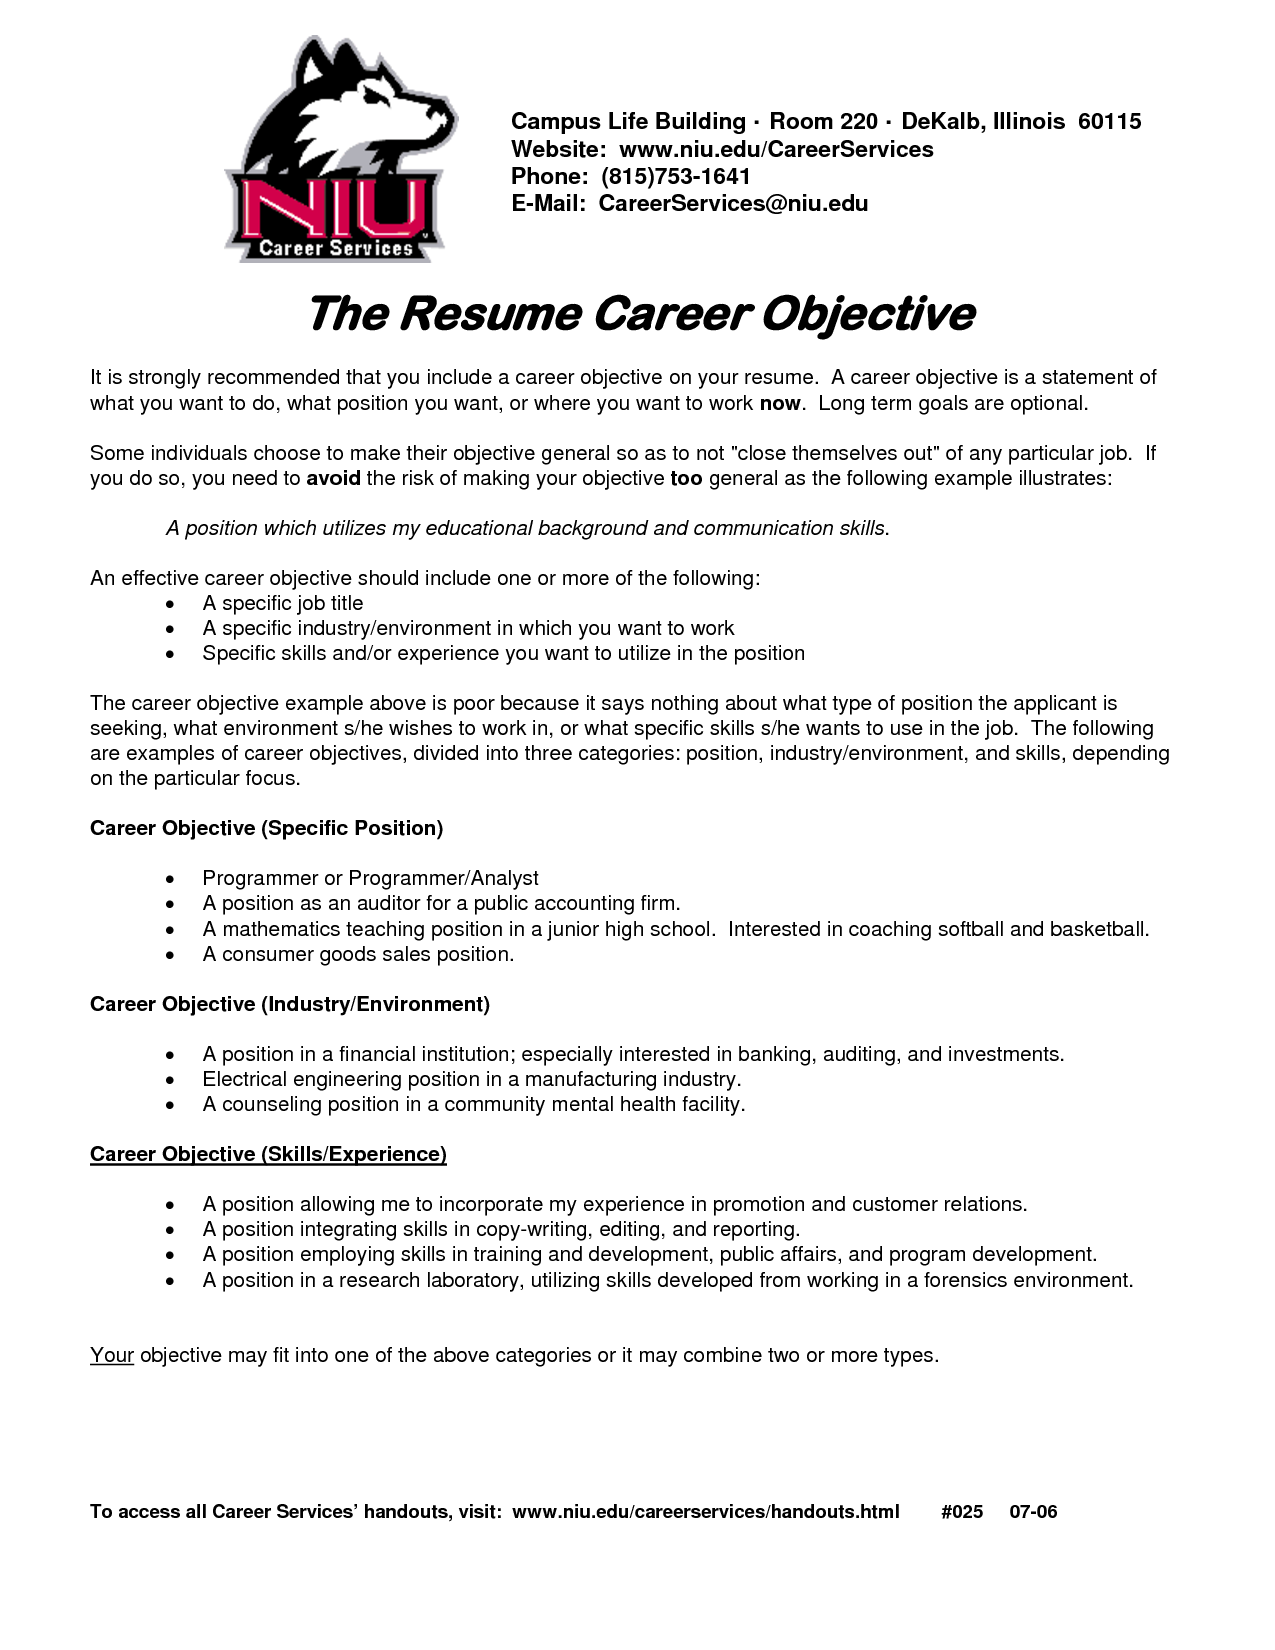 Objective For A Resume Extraordinary Httpswwwgooglesearchqobjective Resume  Resume Design Decoration